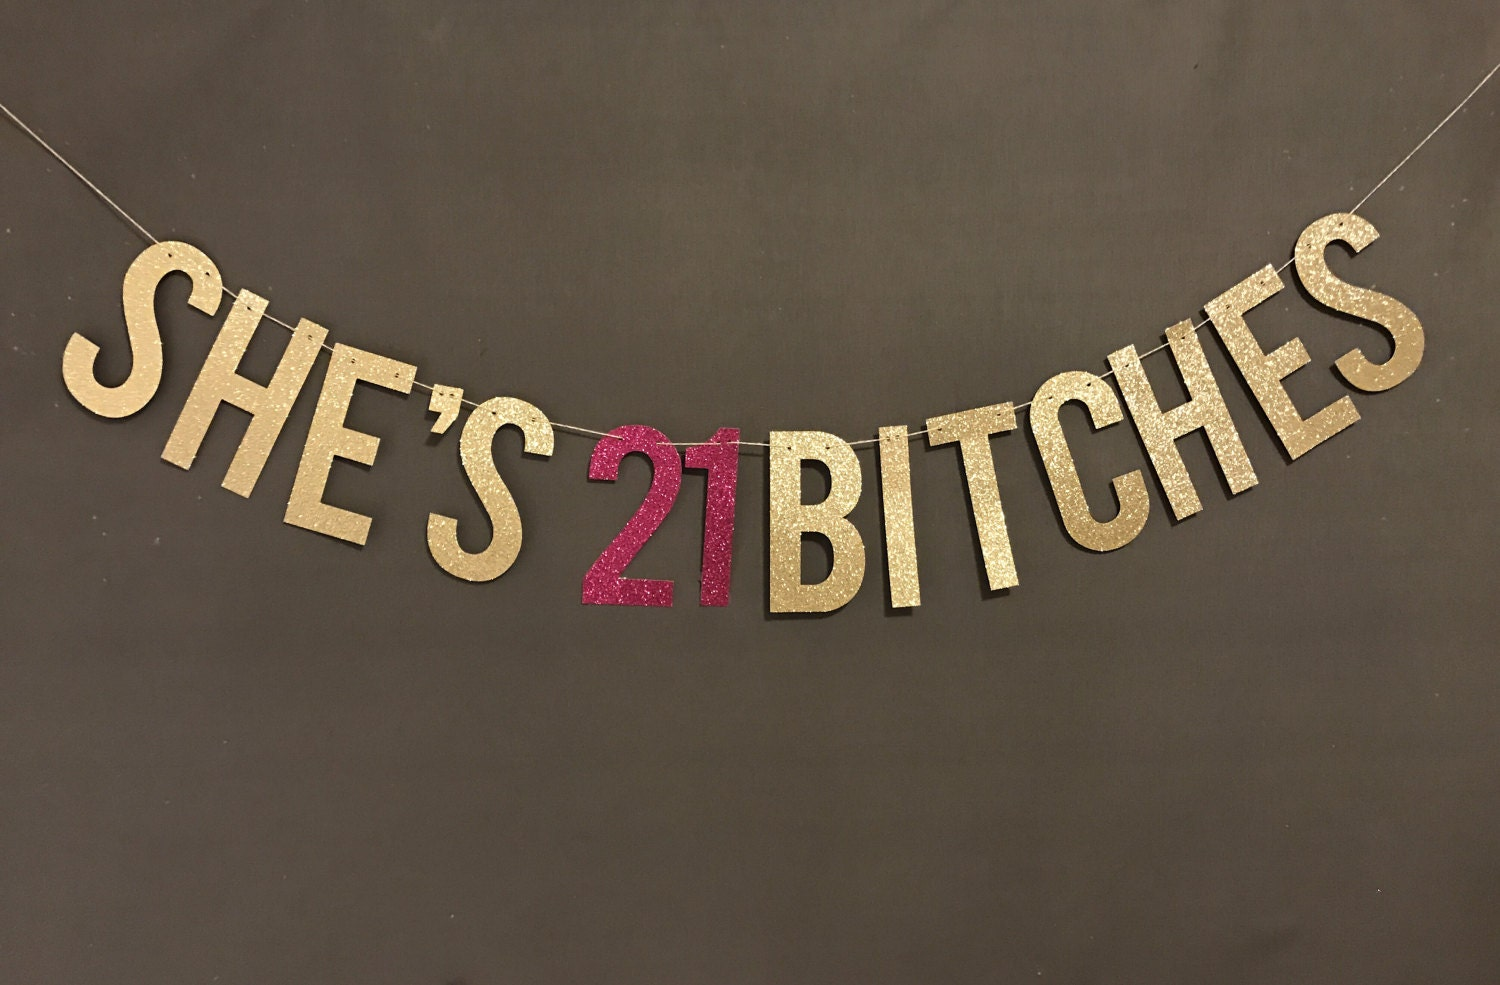 She's 21 Bitches Banner 21st Birthday party banner